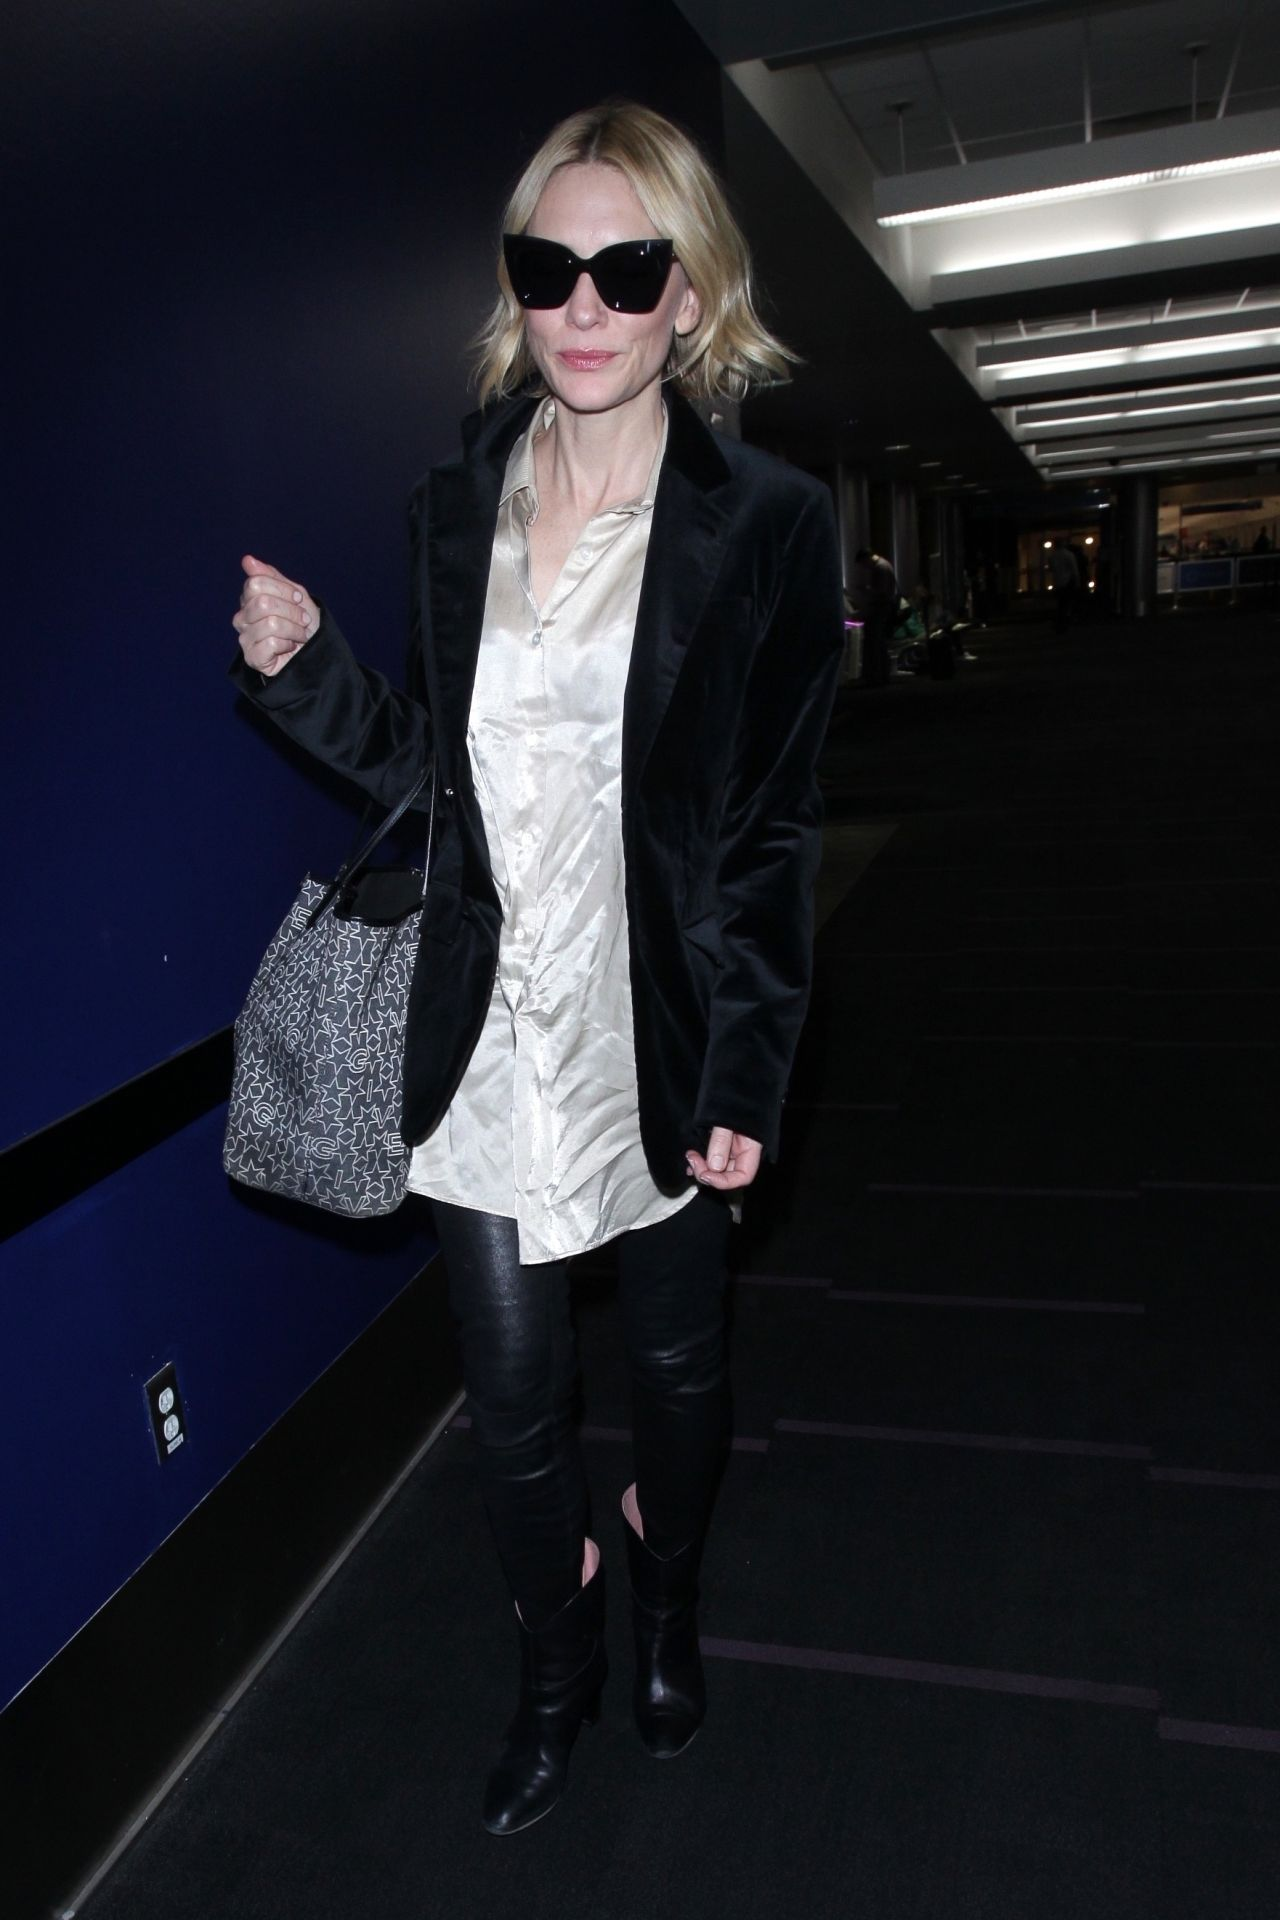 Cate Blanchett at LAX Airport 10/11/2017